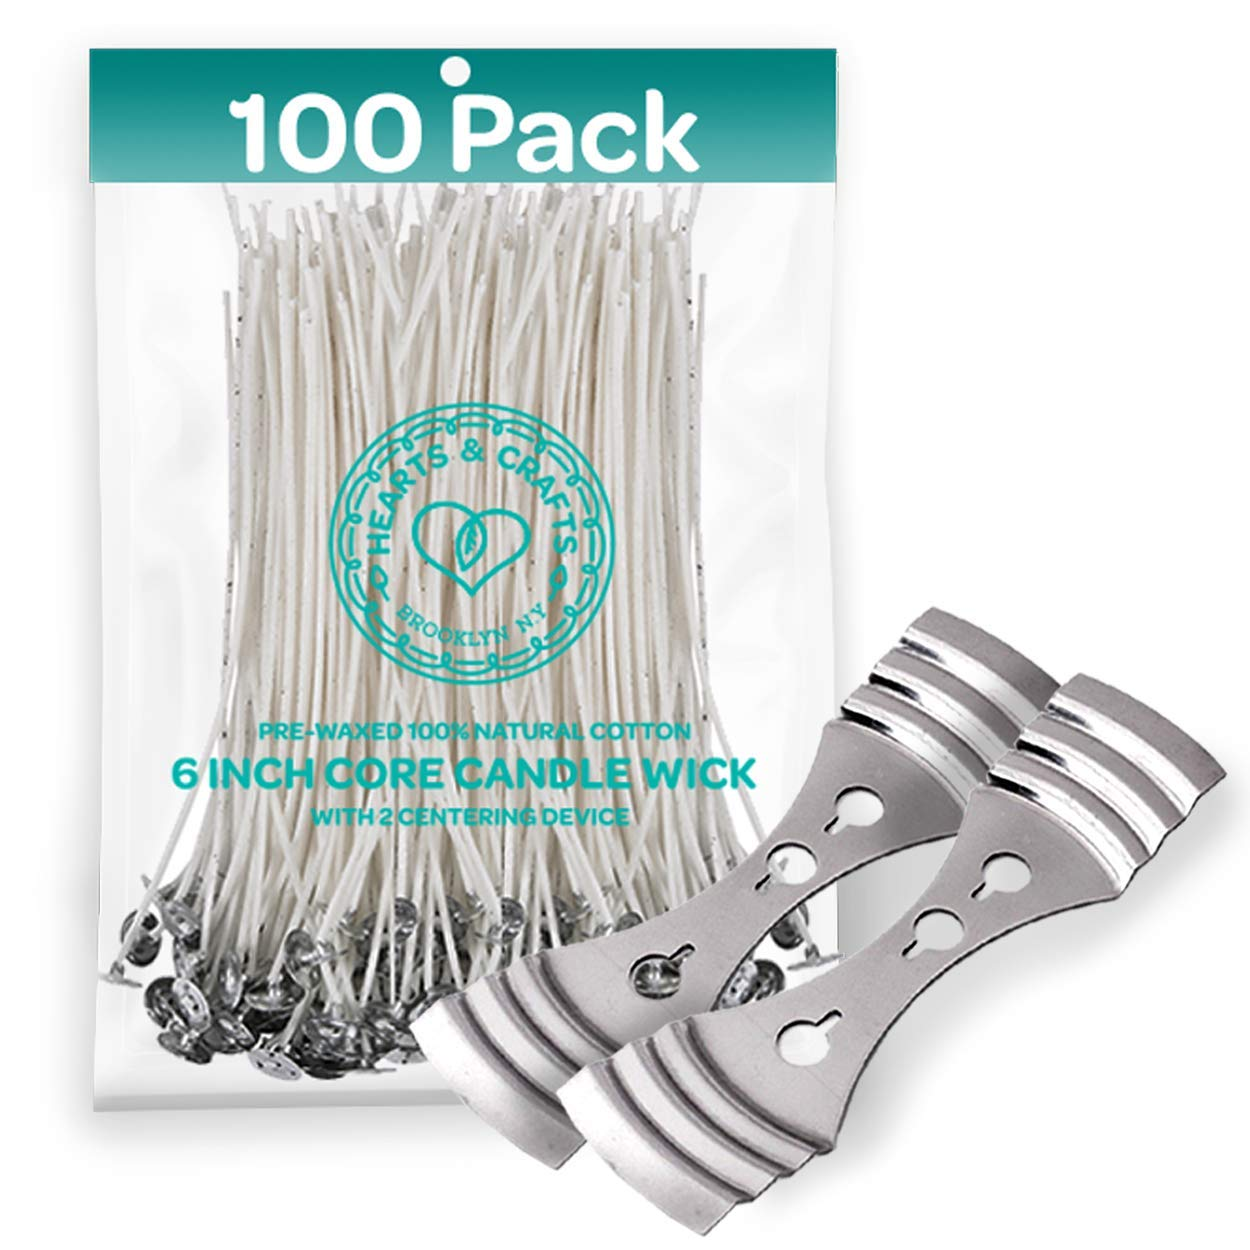 WANDIC Candle Wicks 200 Foot //61 M Braided Wick with 2 Pcs Candle Wick Stickers for Candle DIY and Candle Making